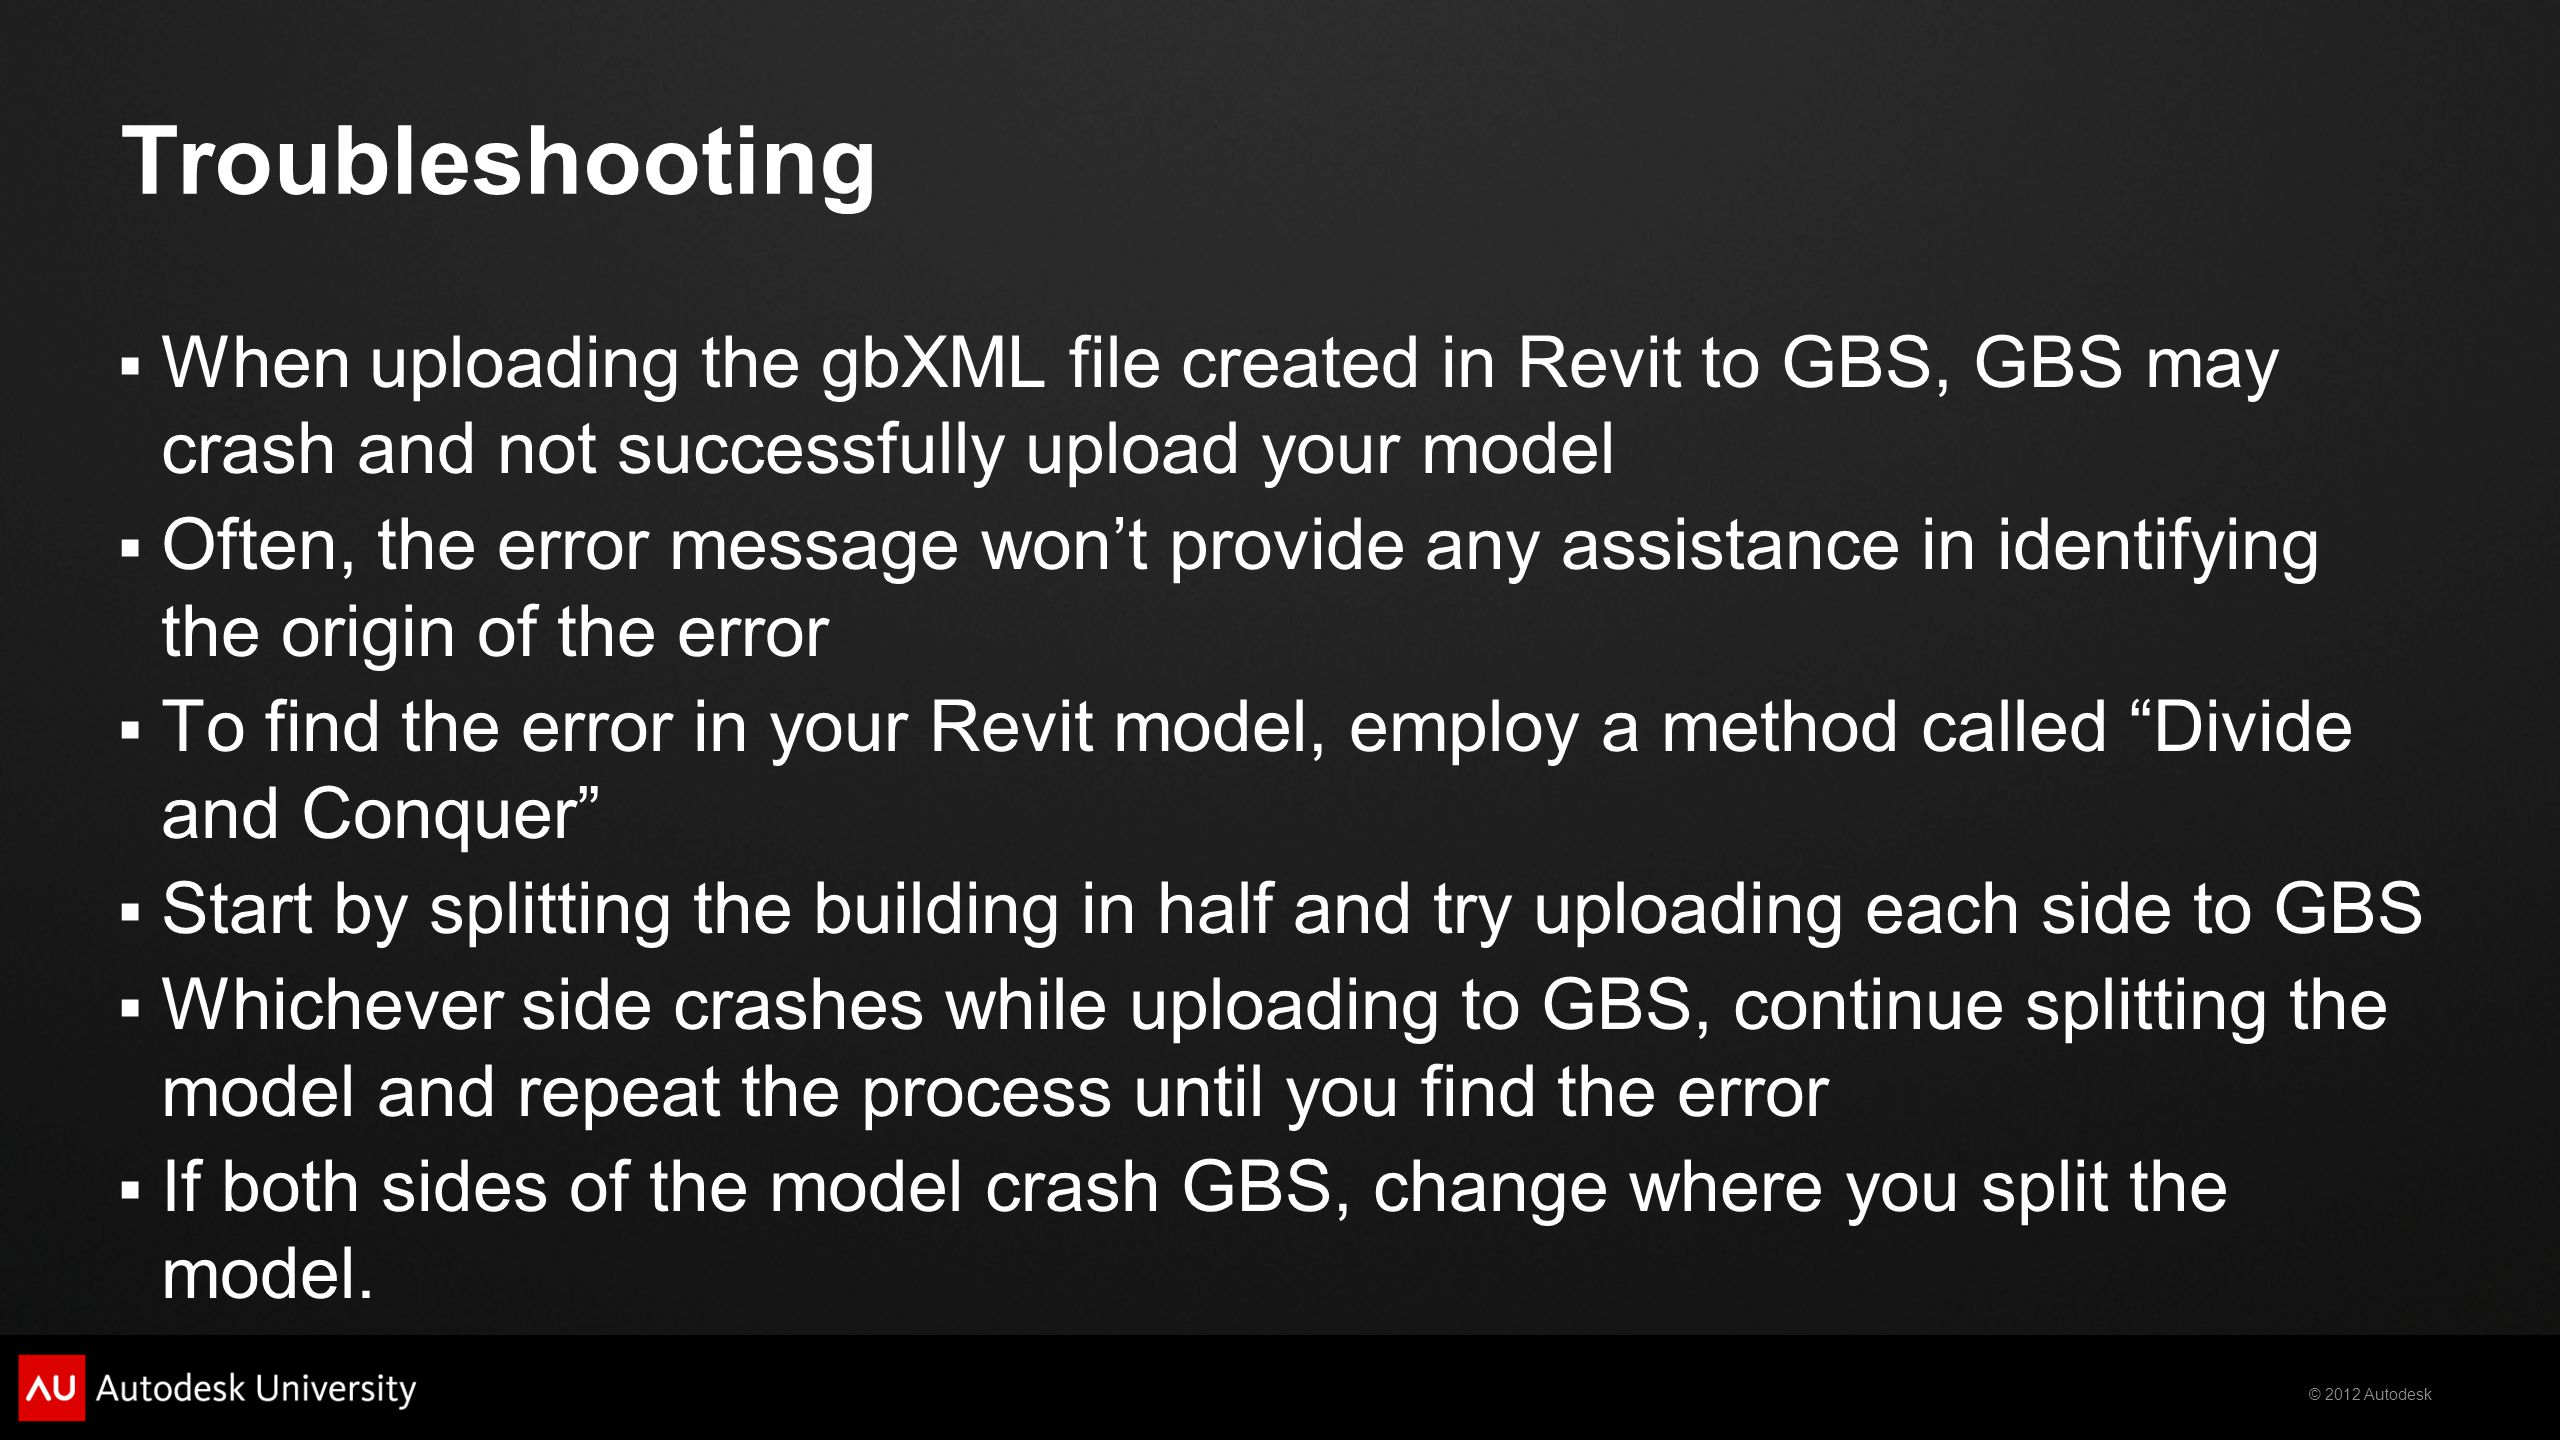 Troubleshooting When uploading the gbXML file created in Revit to GBS, GBS may crash and not successfully upload your model.